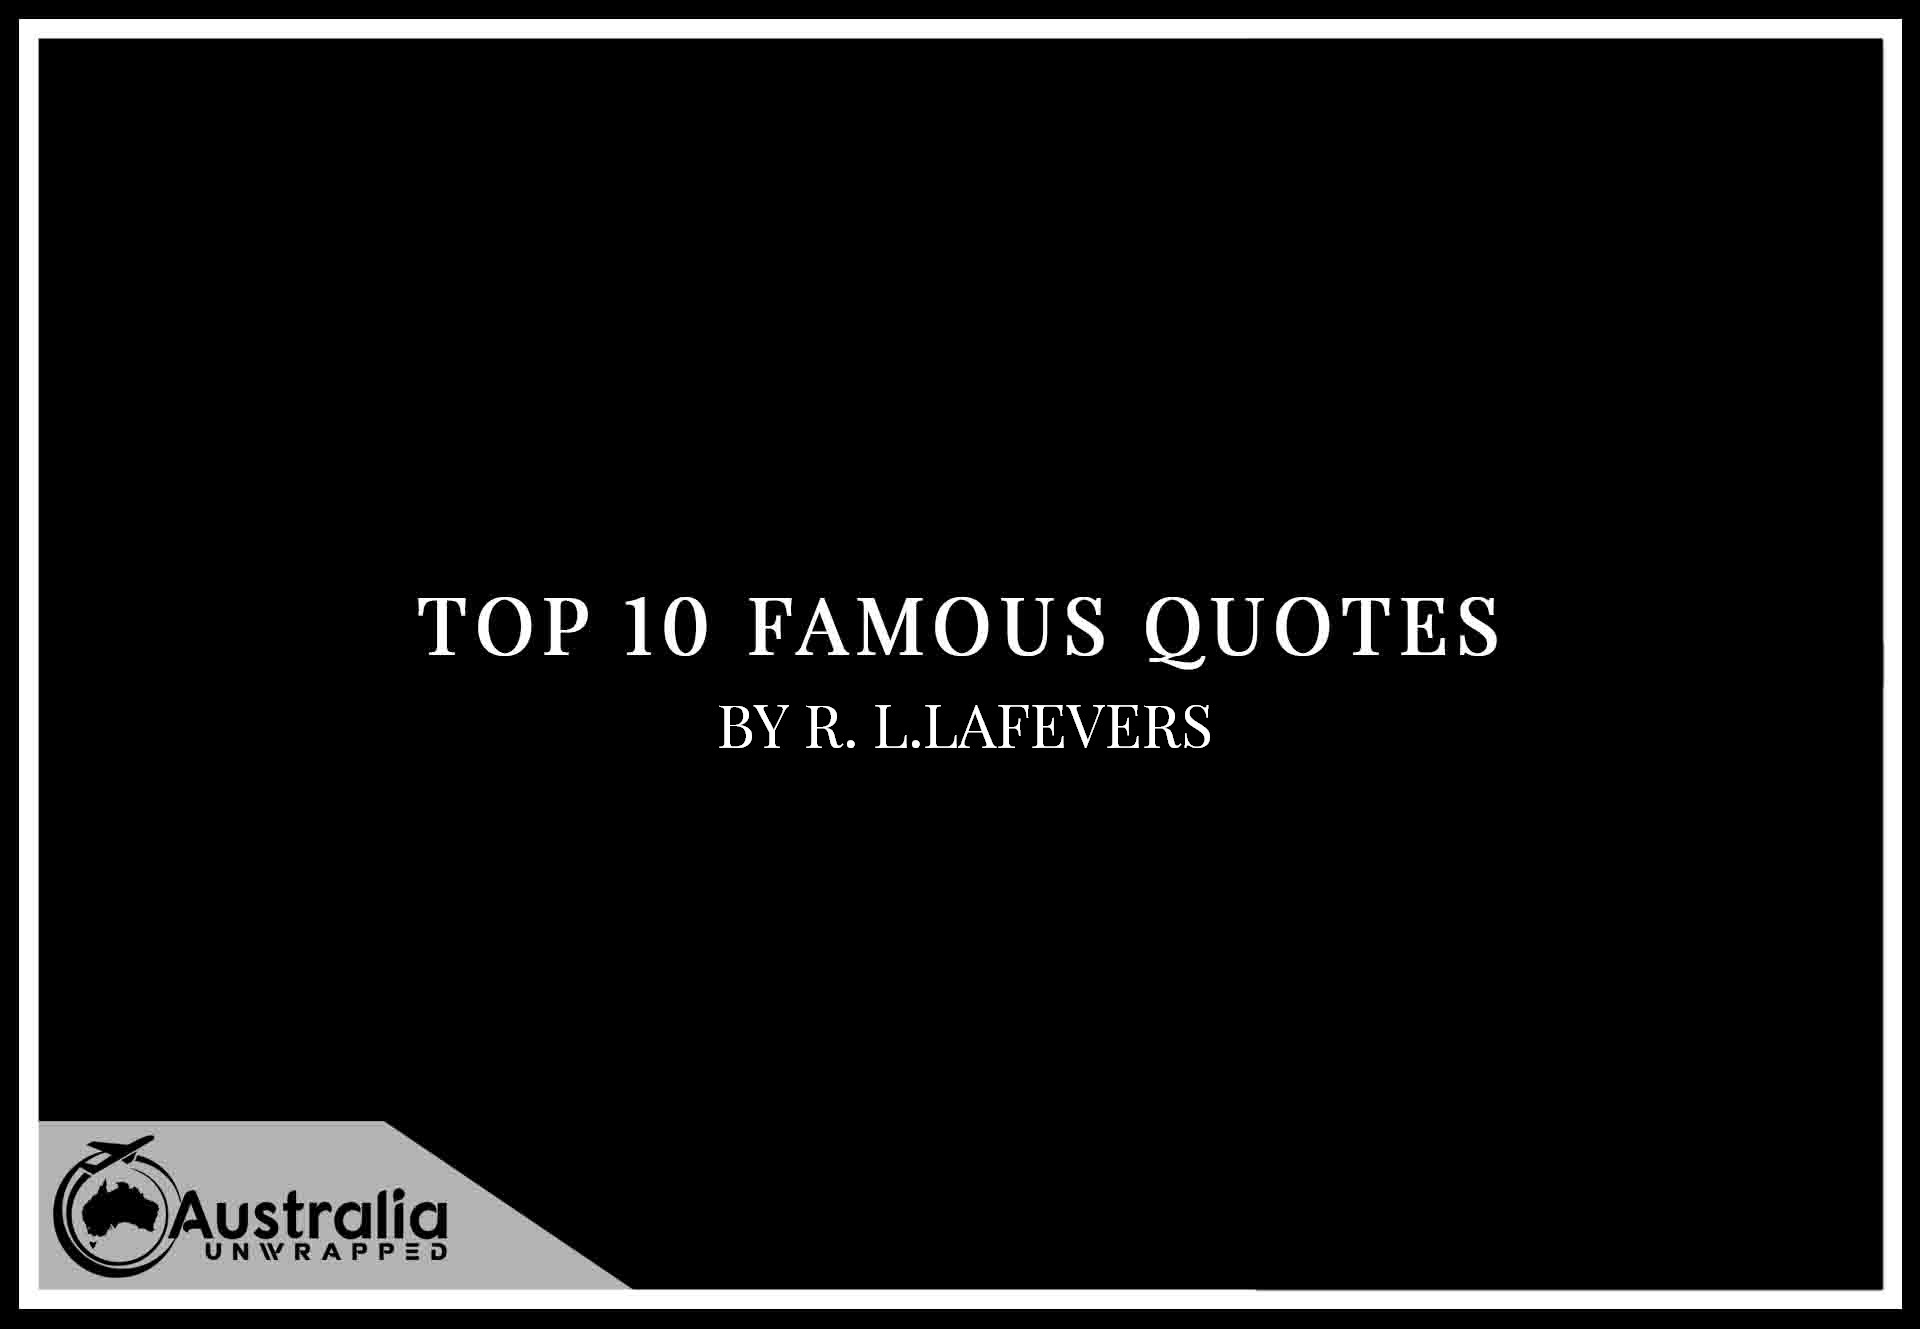 Top 10 Famous Quotes by Author R.L. LaFevers